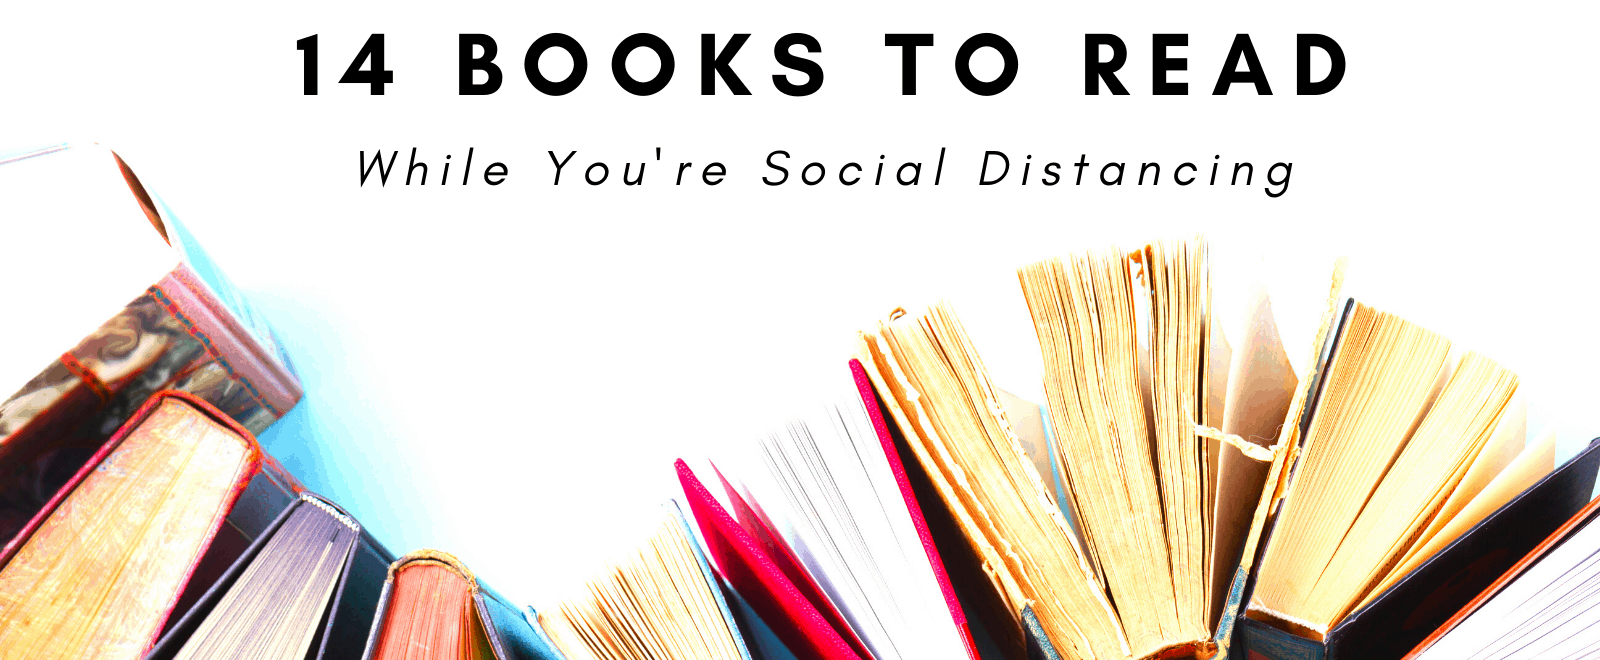 books to read while social distancing